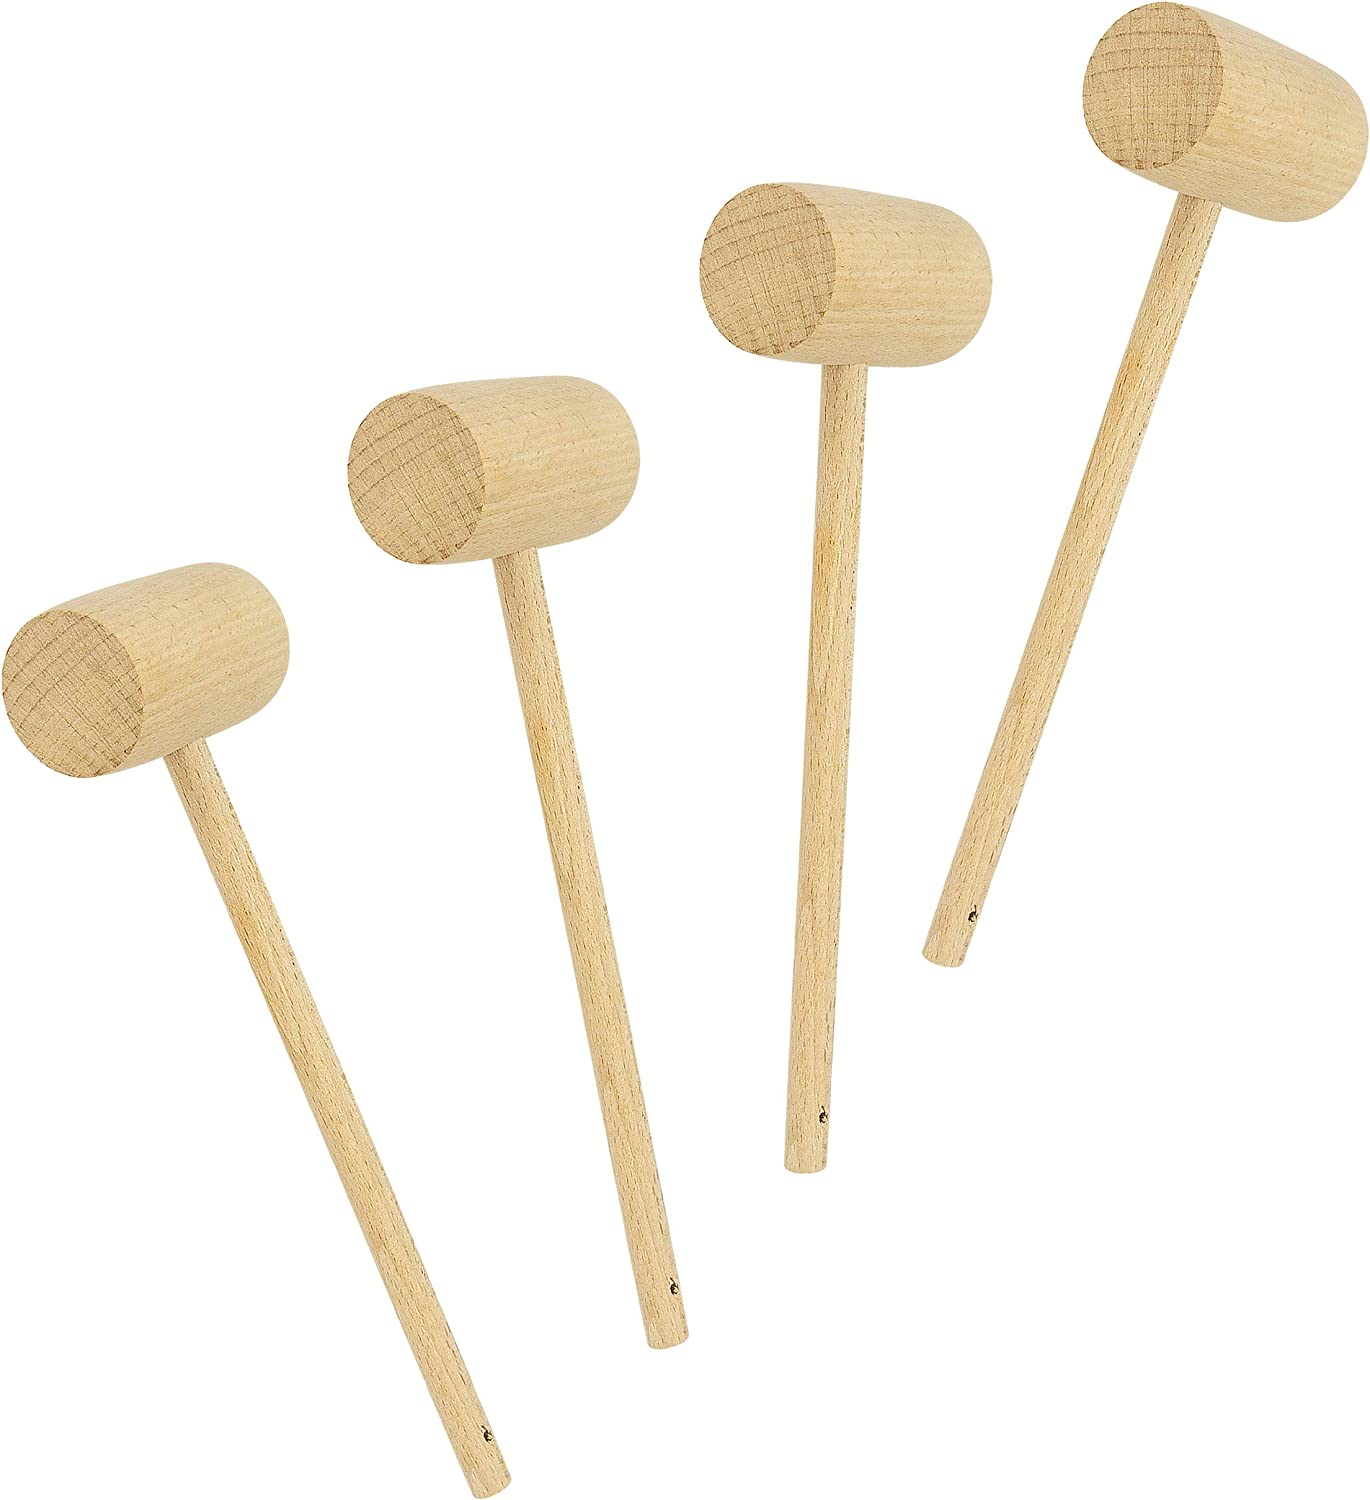 10pcs Natural Wooden Hammer Wood Mallets Small for Seafood Lobster Crackers Lot